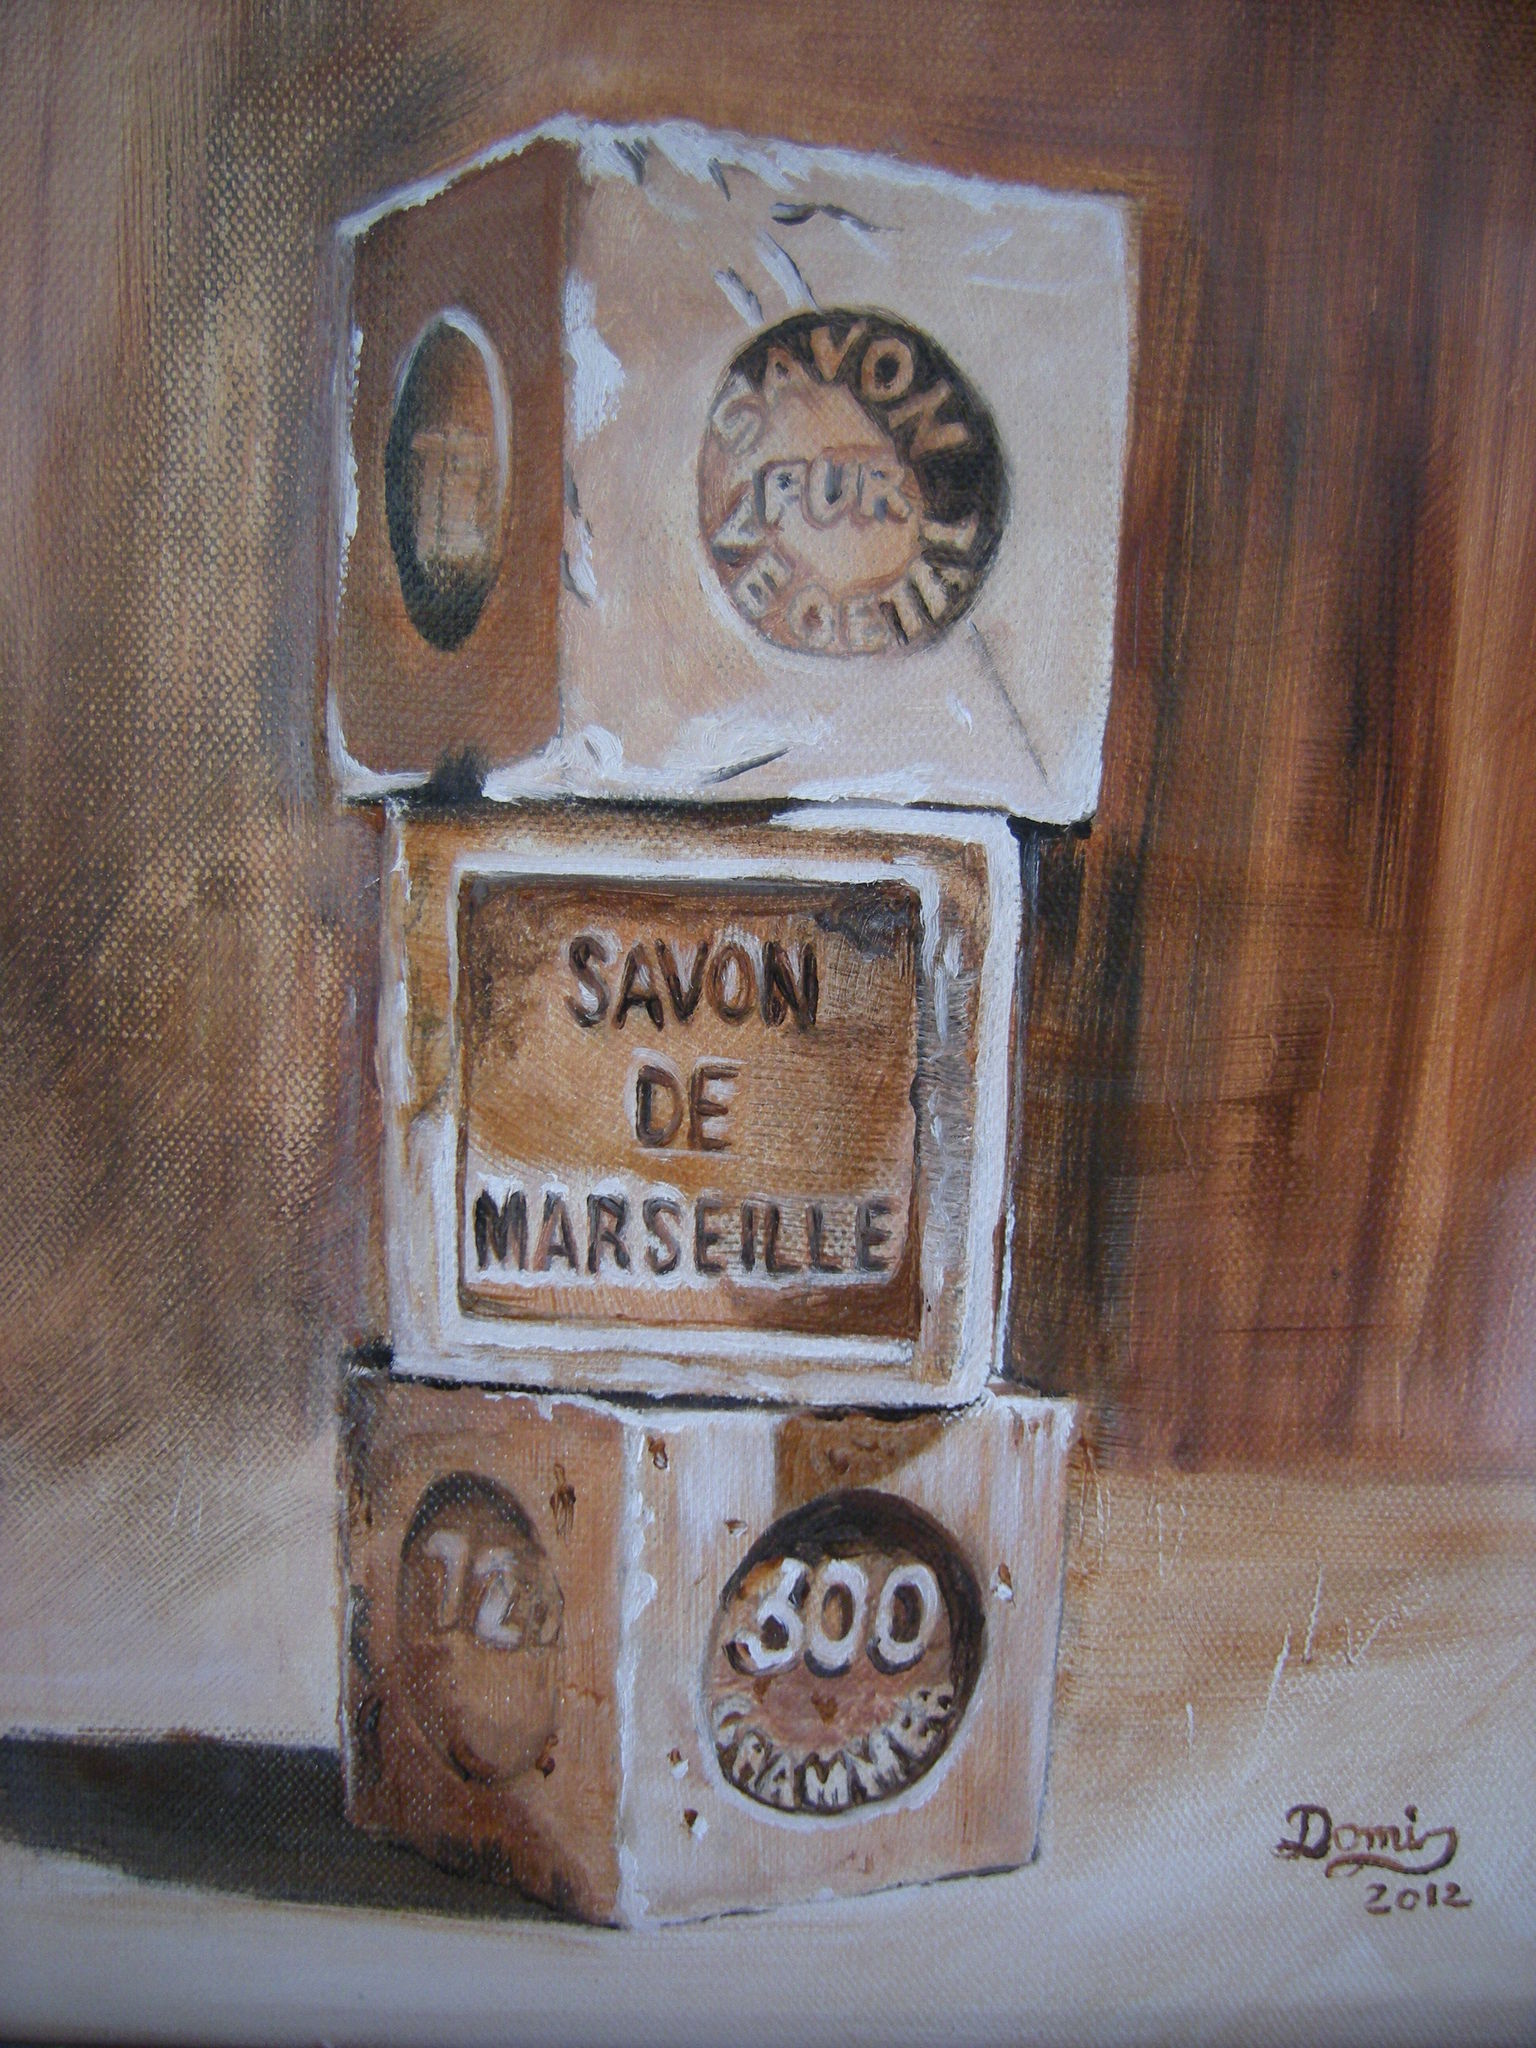 la petite histoire du savon de marseille domi dessins et peintures. Black Bedroom Furniture Sets. Home Design Ideas